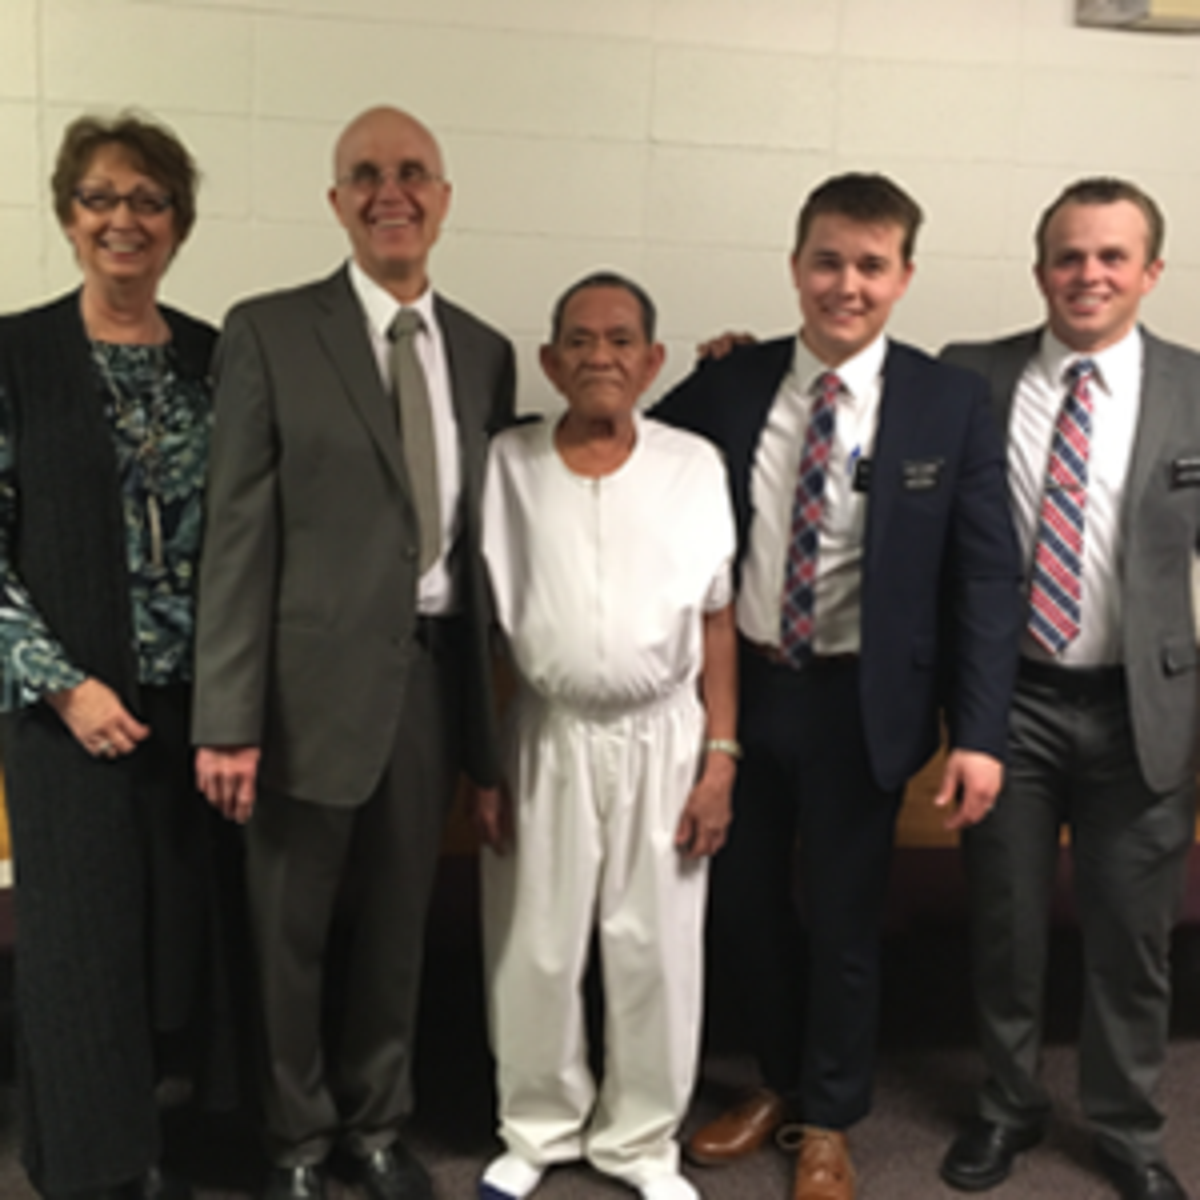 Rolly with the missionaries of the Church of Jesus Christ of Latter-day Saints